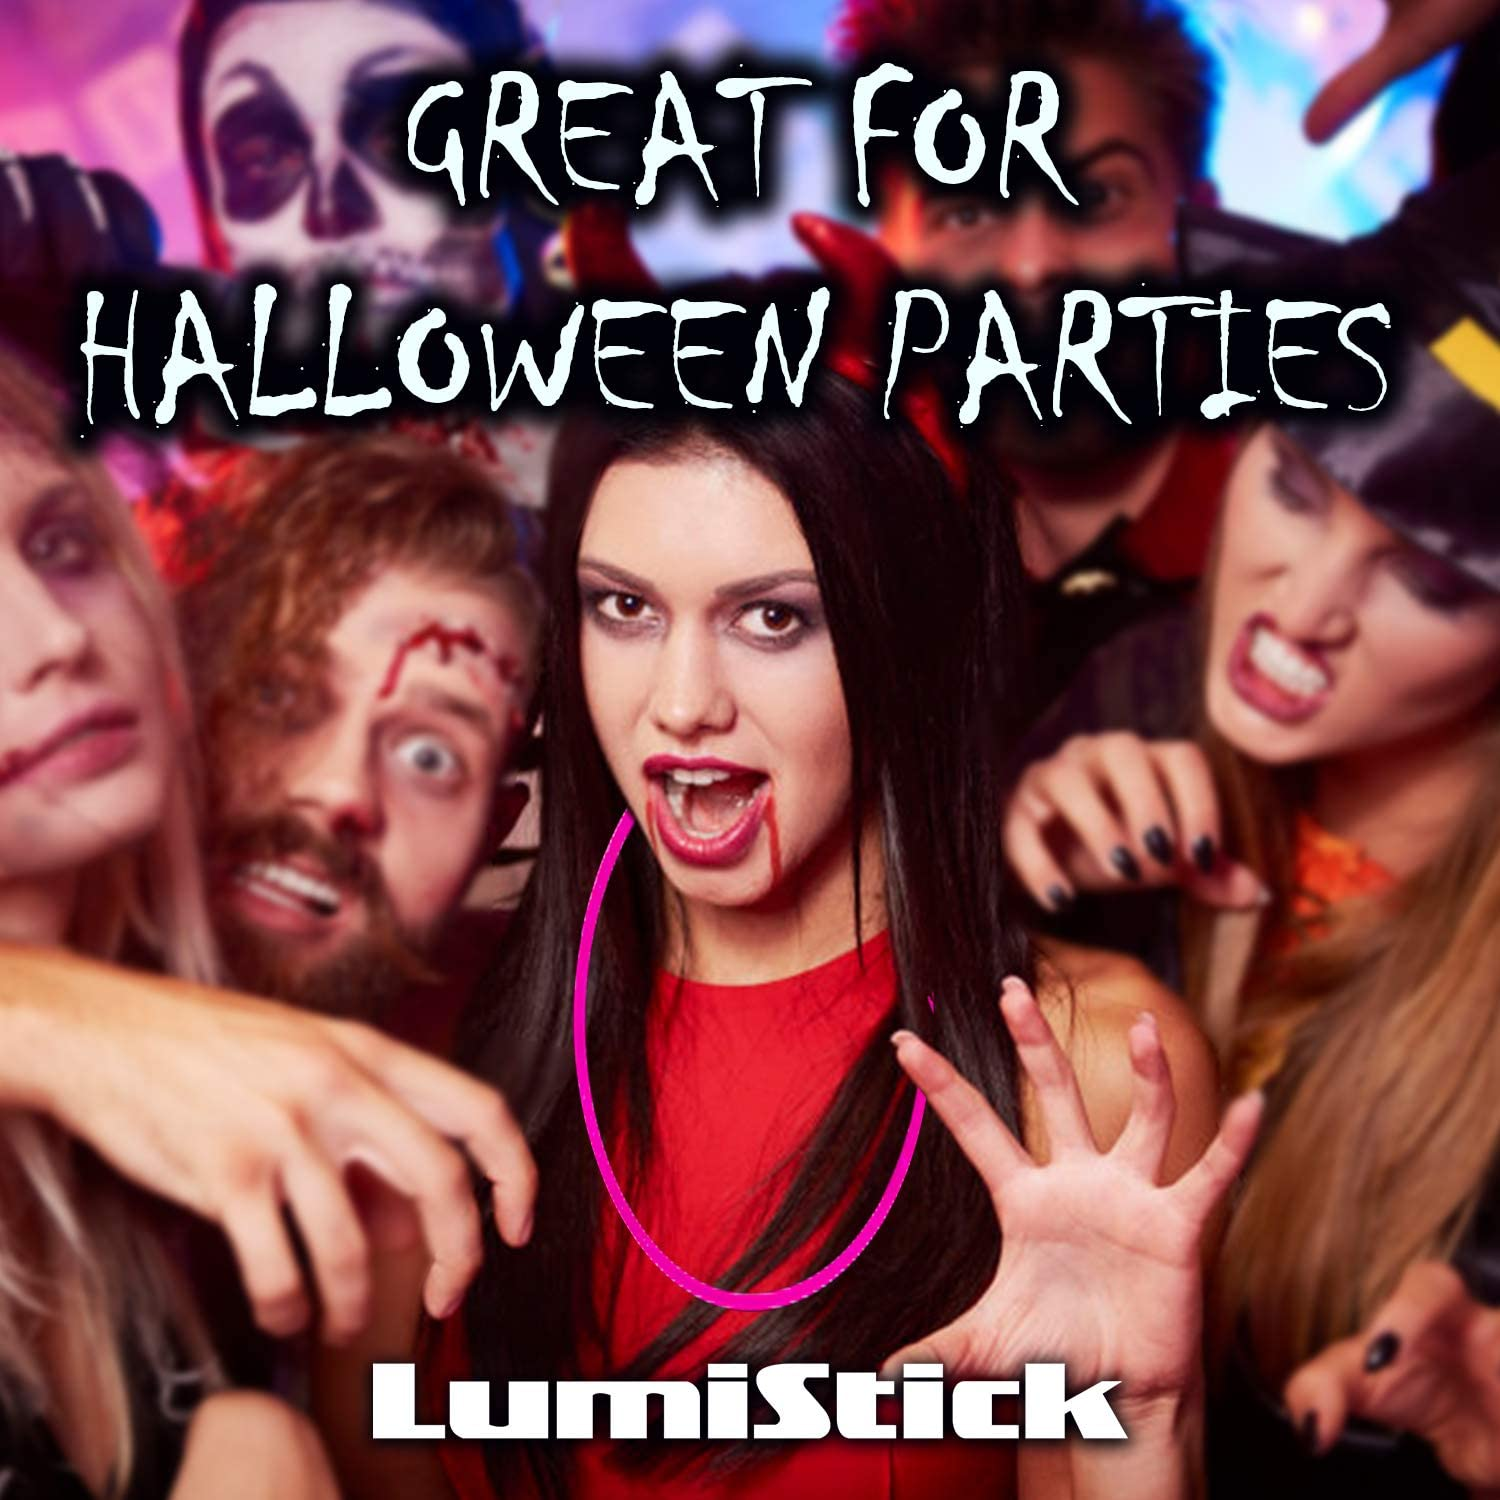 Lumistick 22 Inch Glow Stick Necklaces Non-Toxic /& Kids Safe Light Up Neckwear Aqua, 100 Necklaces Bendable Sticks with Connectors Glows in The Dark Night Party Favor